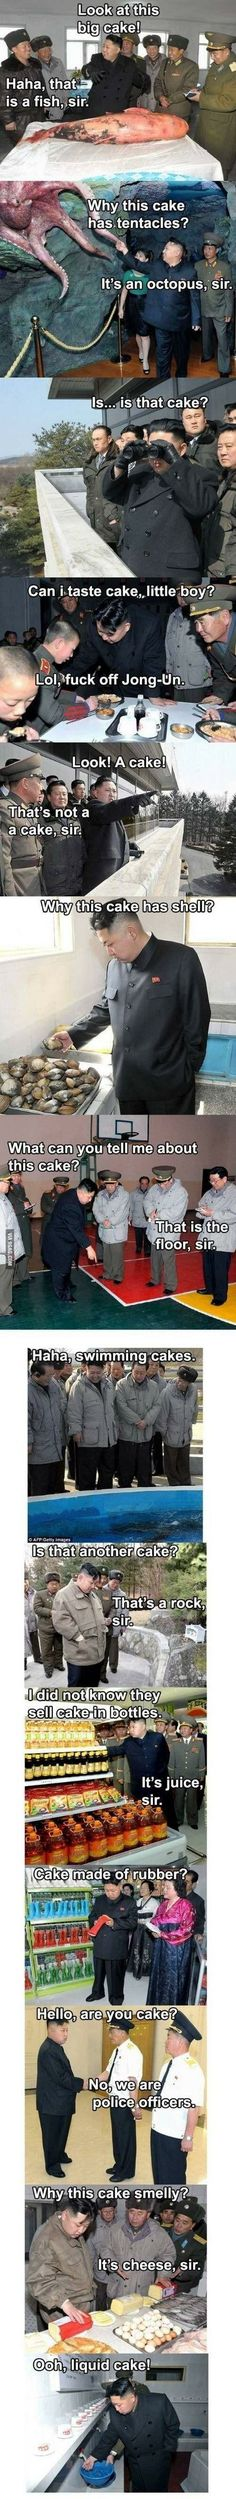 "Kim Jong Un explores the world (WTF IS THIS AND WHY IS IT SO FUNNY?!?) ""what can you tell me about this cake?"" ""that is the floor, sir"""